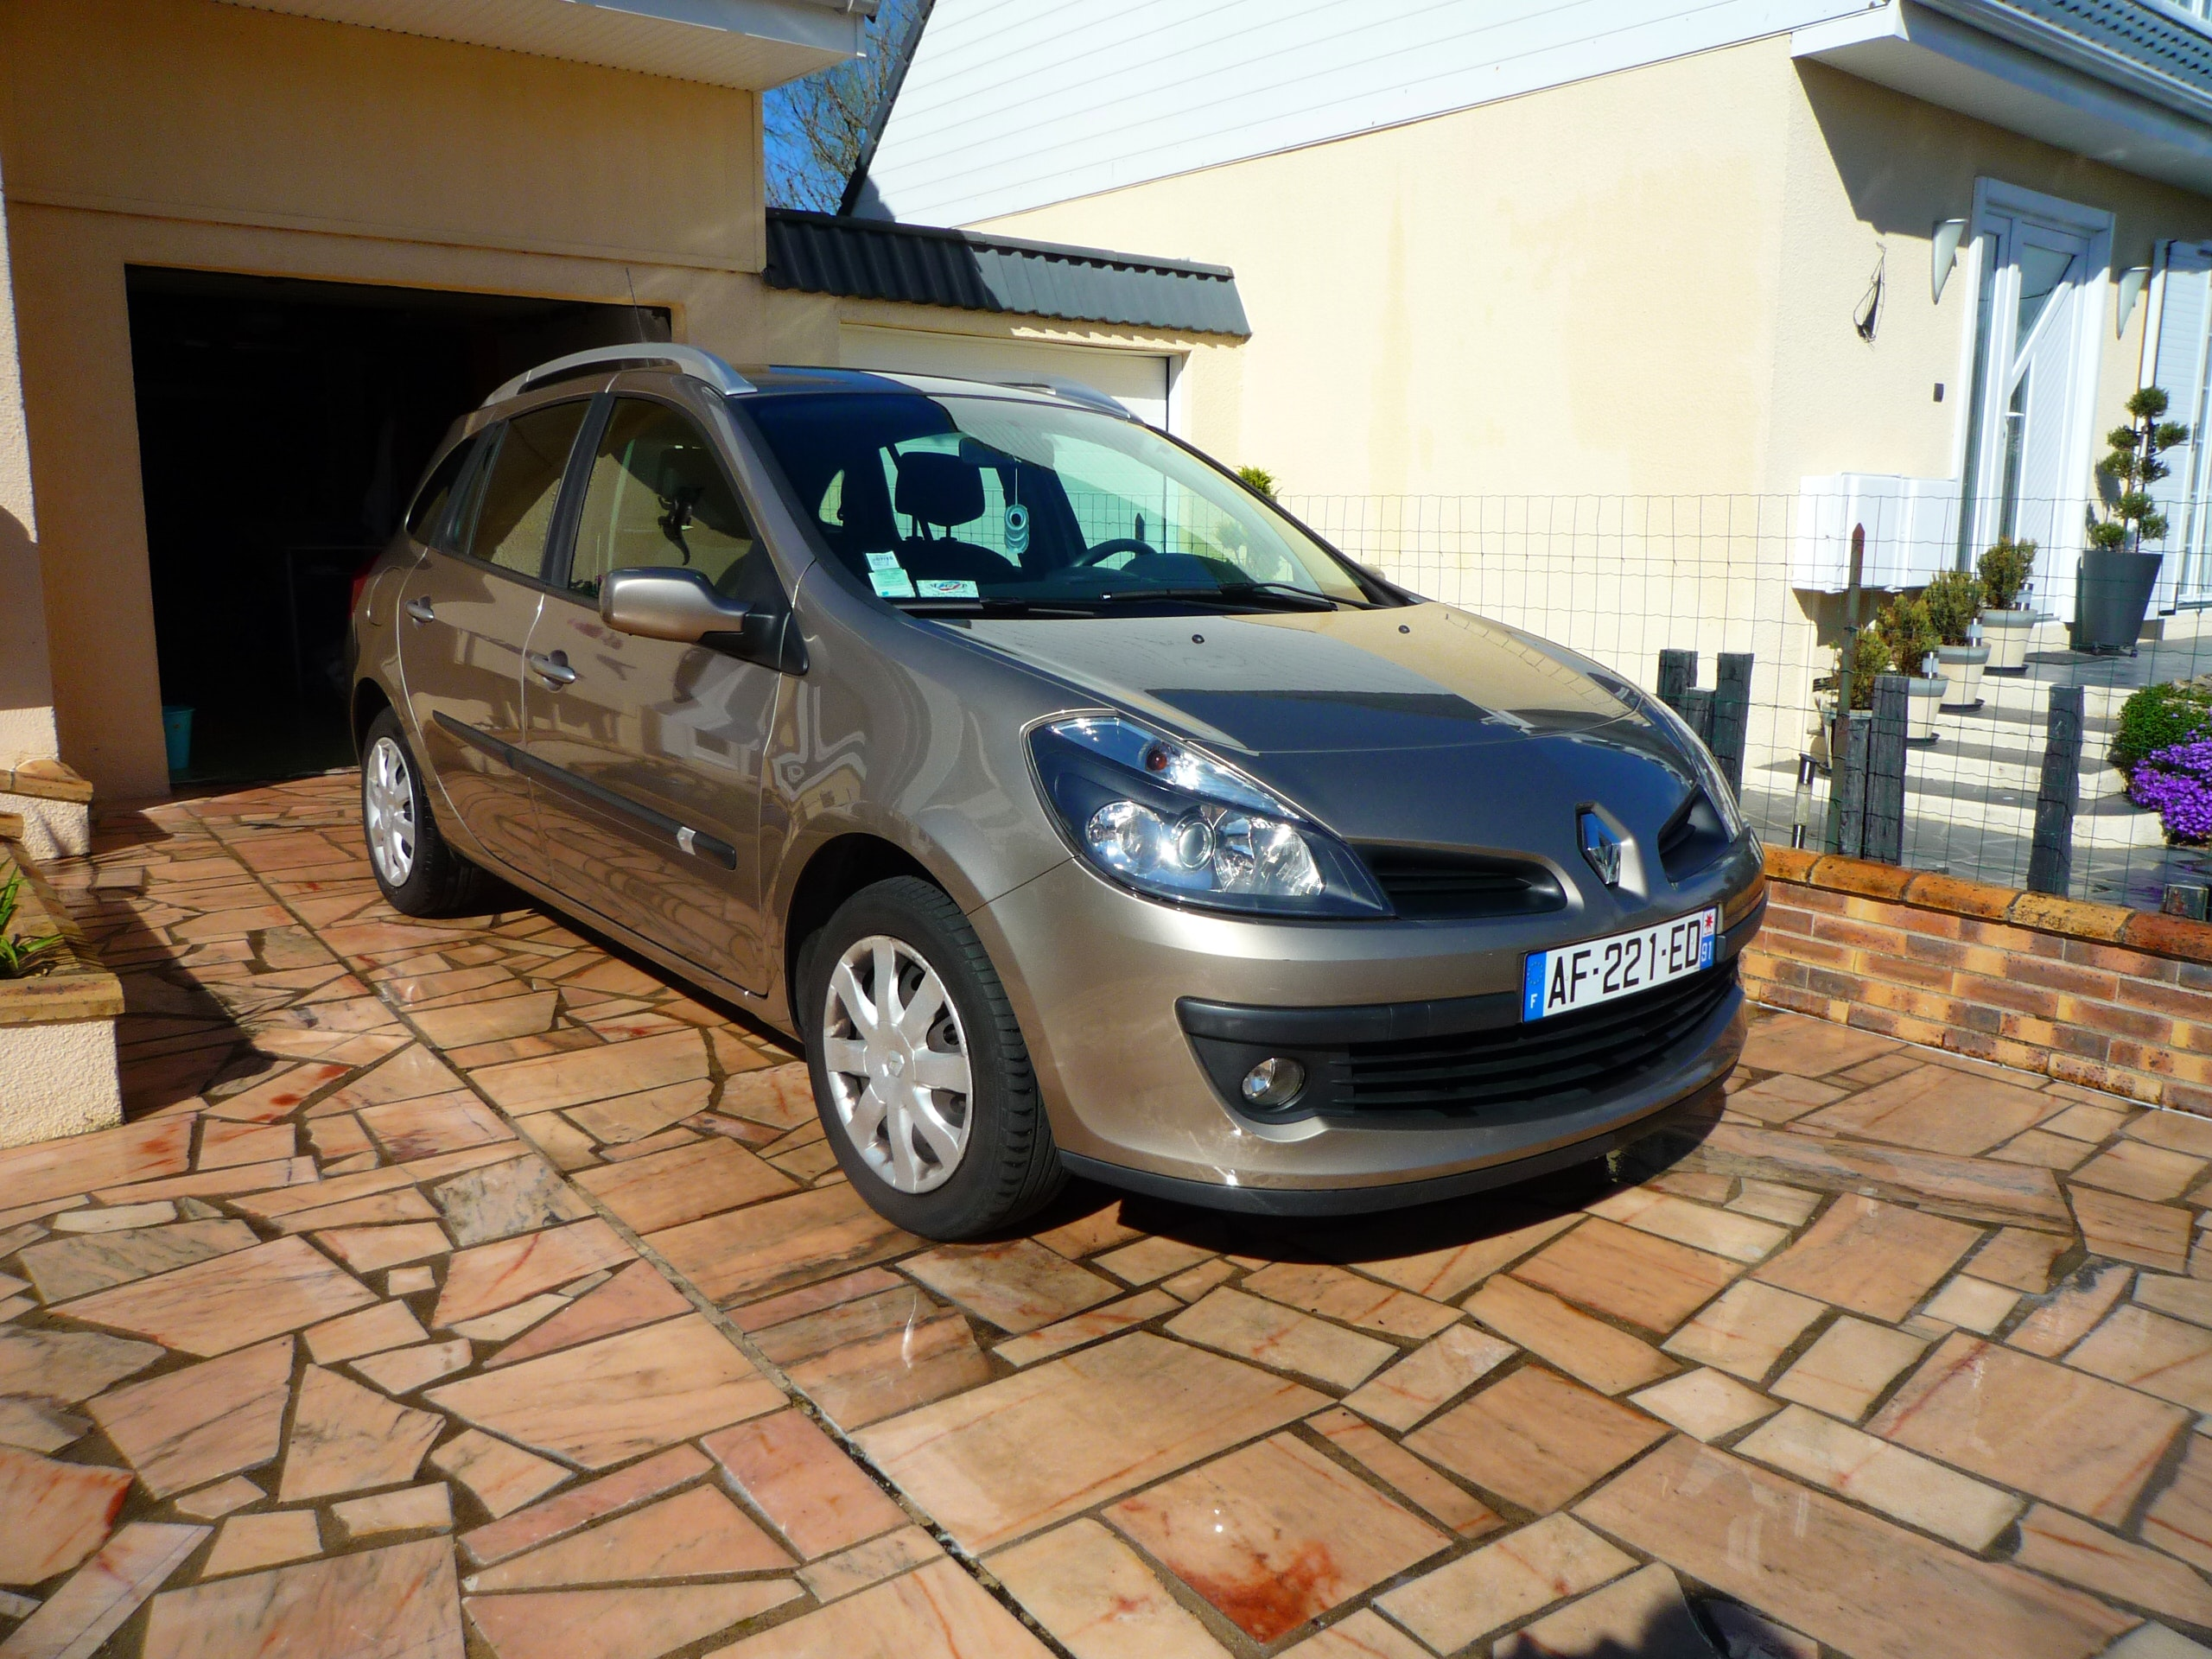 RENAULT CLIO ESTATE, 2008, Diesel - Break Savigny-le-Temple (77)